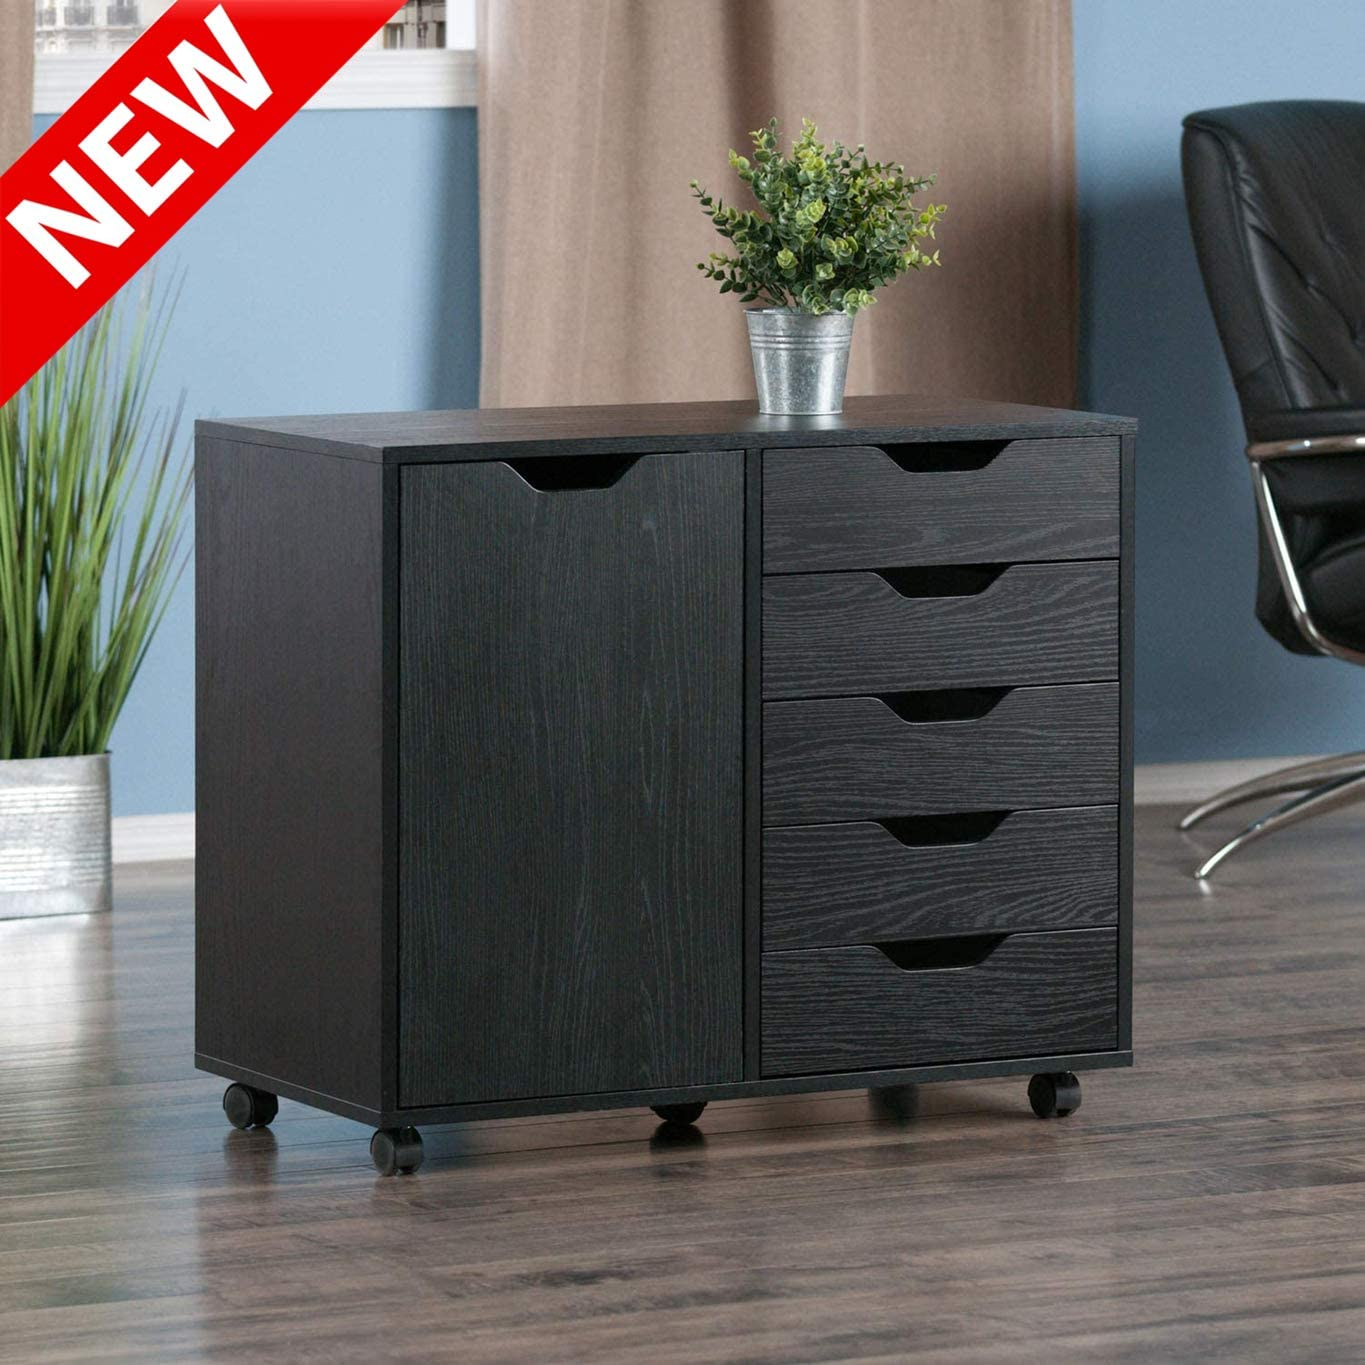 Mobile Lateral File Cabinet with 2-Compartment Cabinet Black Aooppec Updated Version Thicken Wood 5-Drawer Filing Cabinet with Wheels Printer//Scanner Stand Organizer Cabinet for Home Office